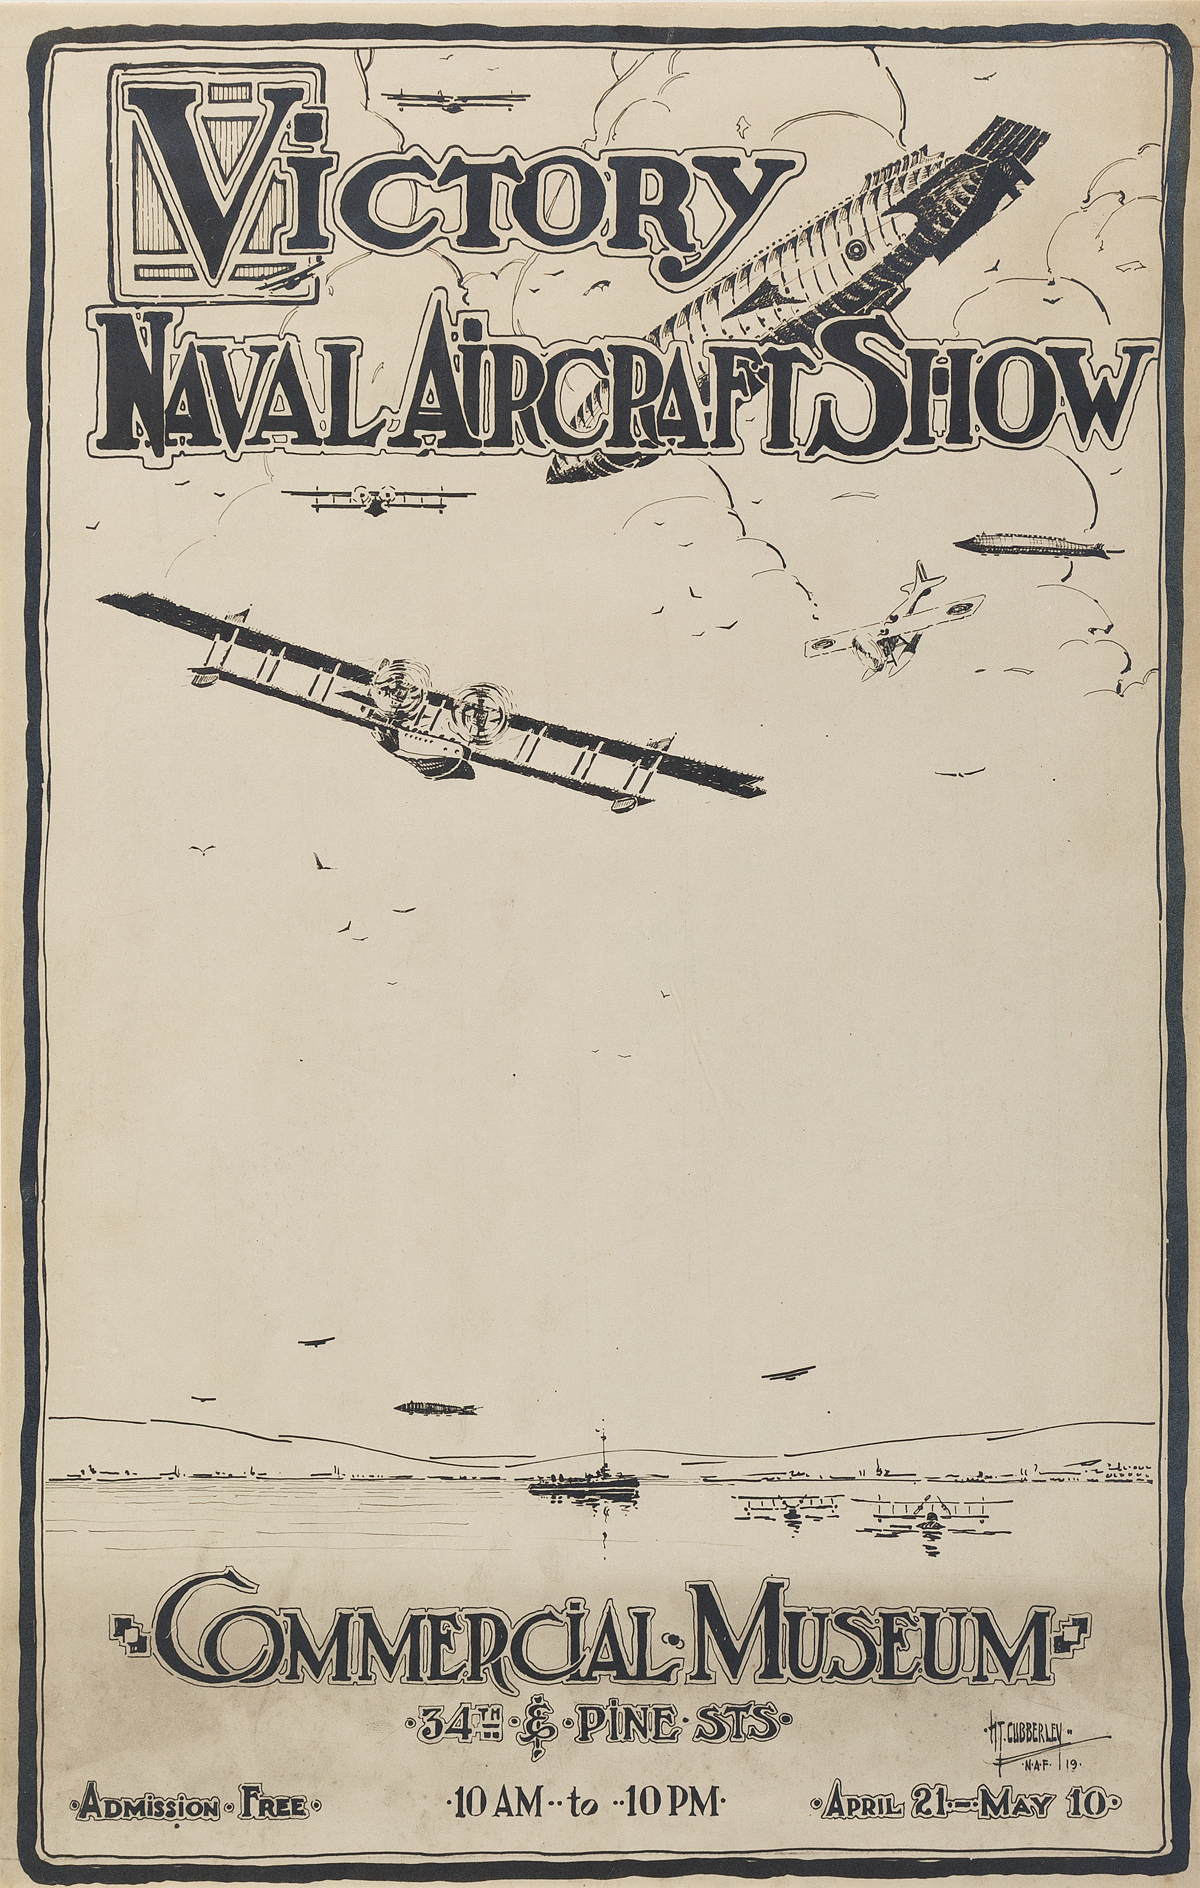 HT-CUBBERLEY-(DATES-UNKNOWN)-VICTORY-NAVAL-AVIATION-SHOW--COMMERCIAL-MUSEUM-Small-format-poster-1919-17x11-inches-45x28-cm